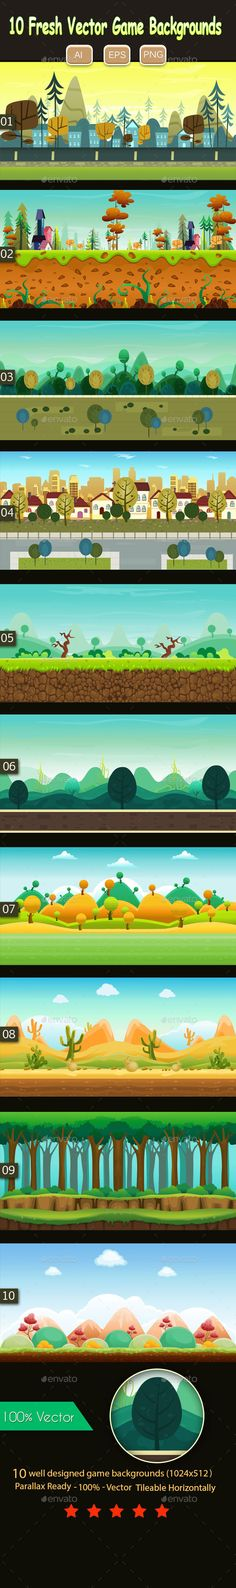 10 Fresh Vector Game Backgrounds on Behance